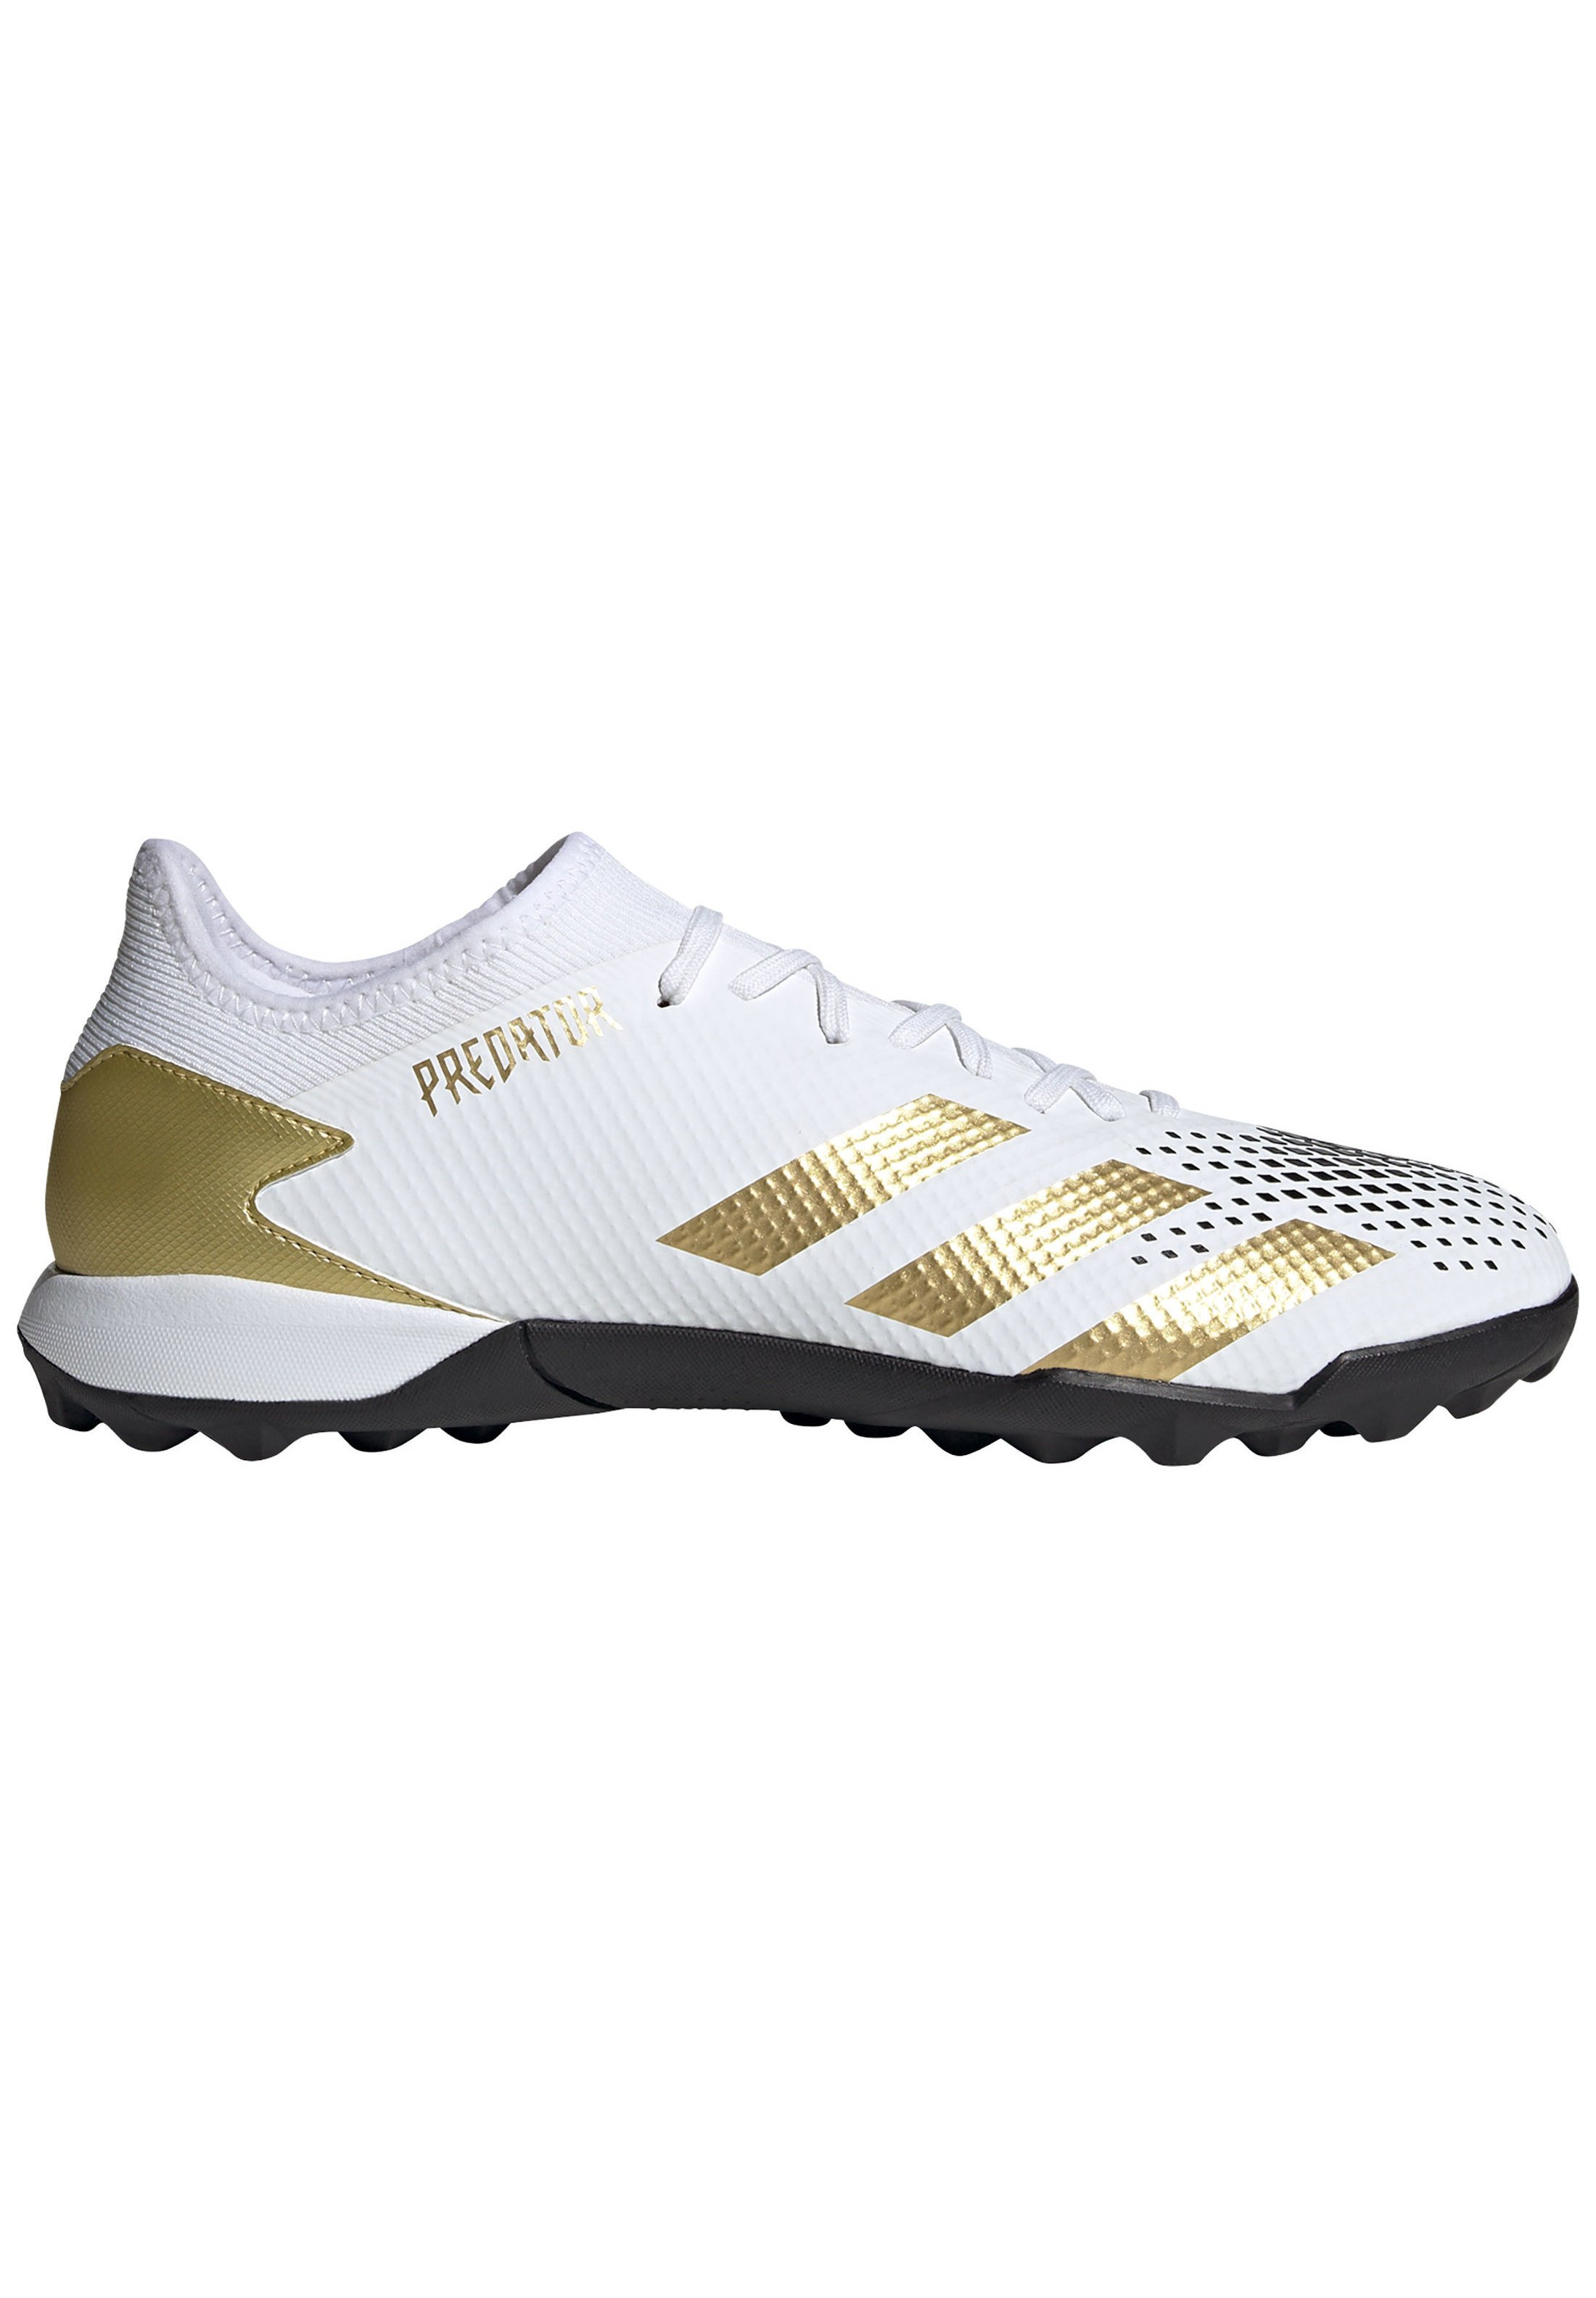 Fußballschuh Multinocken footwear white gold metallic core black